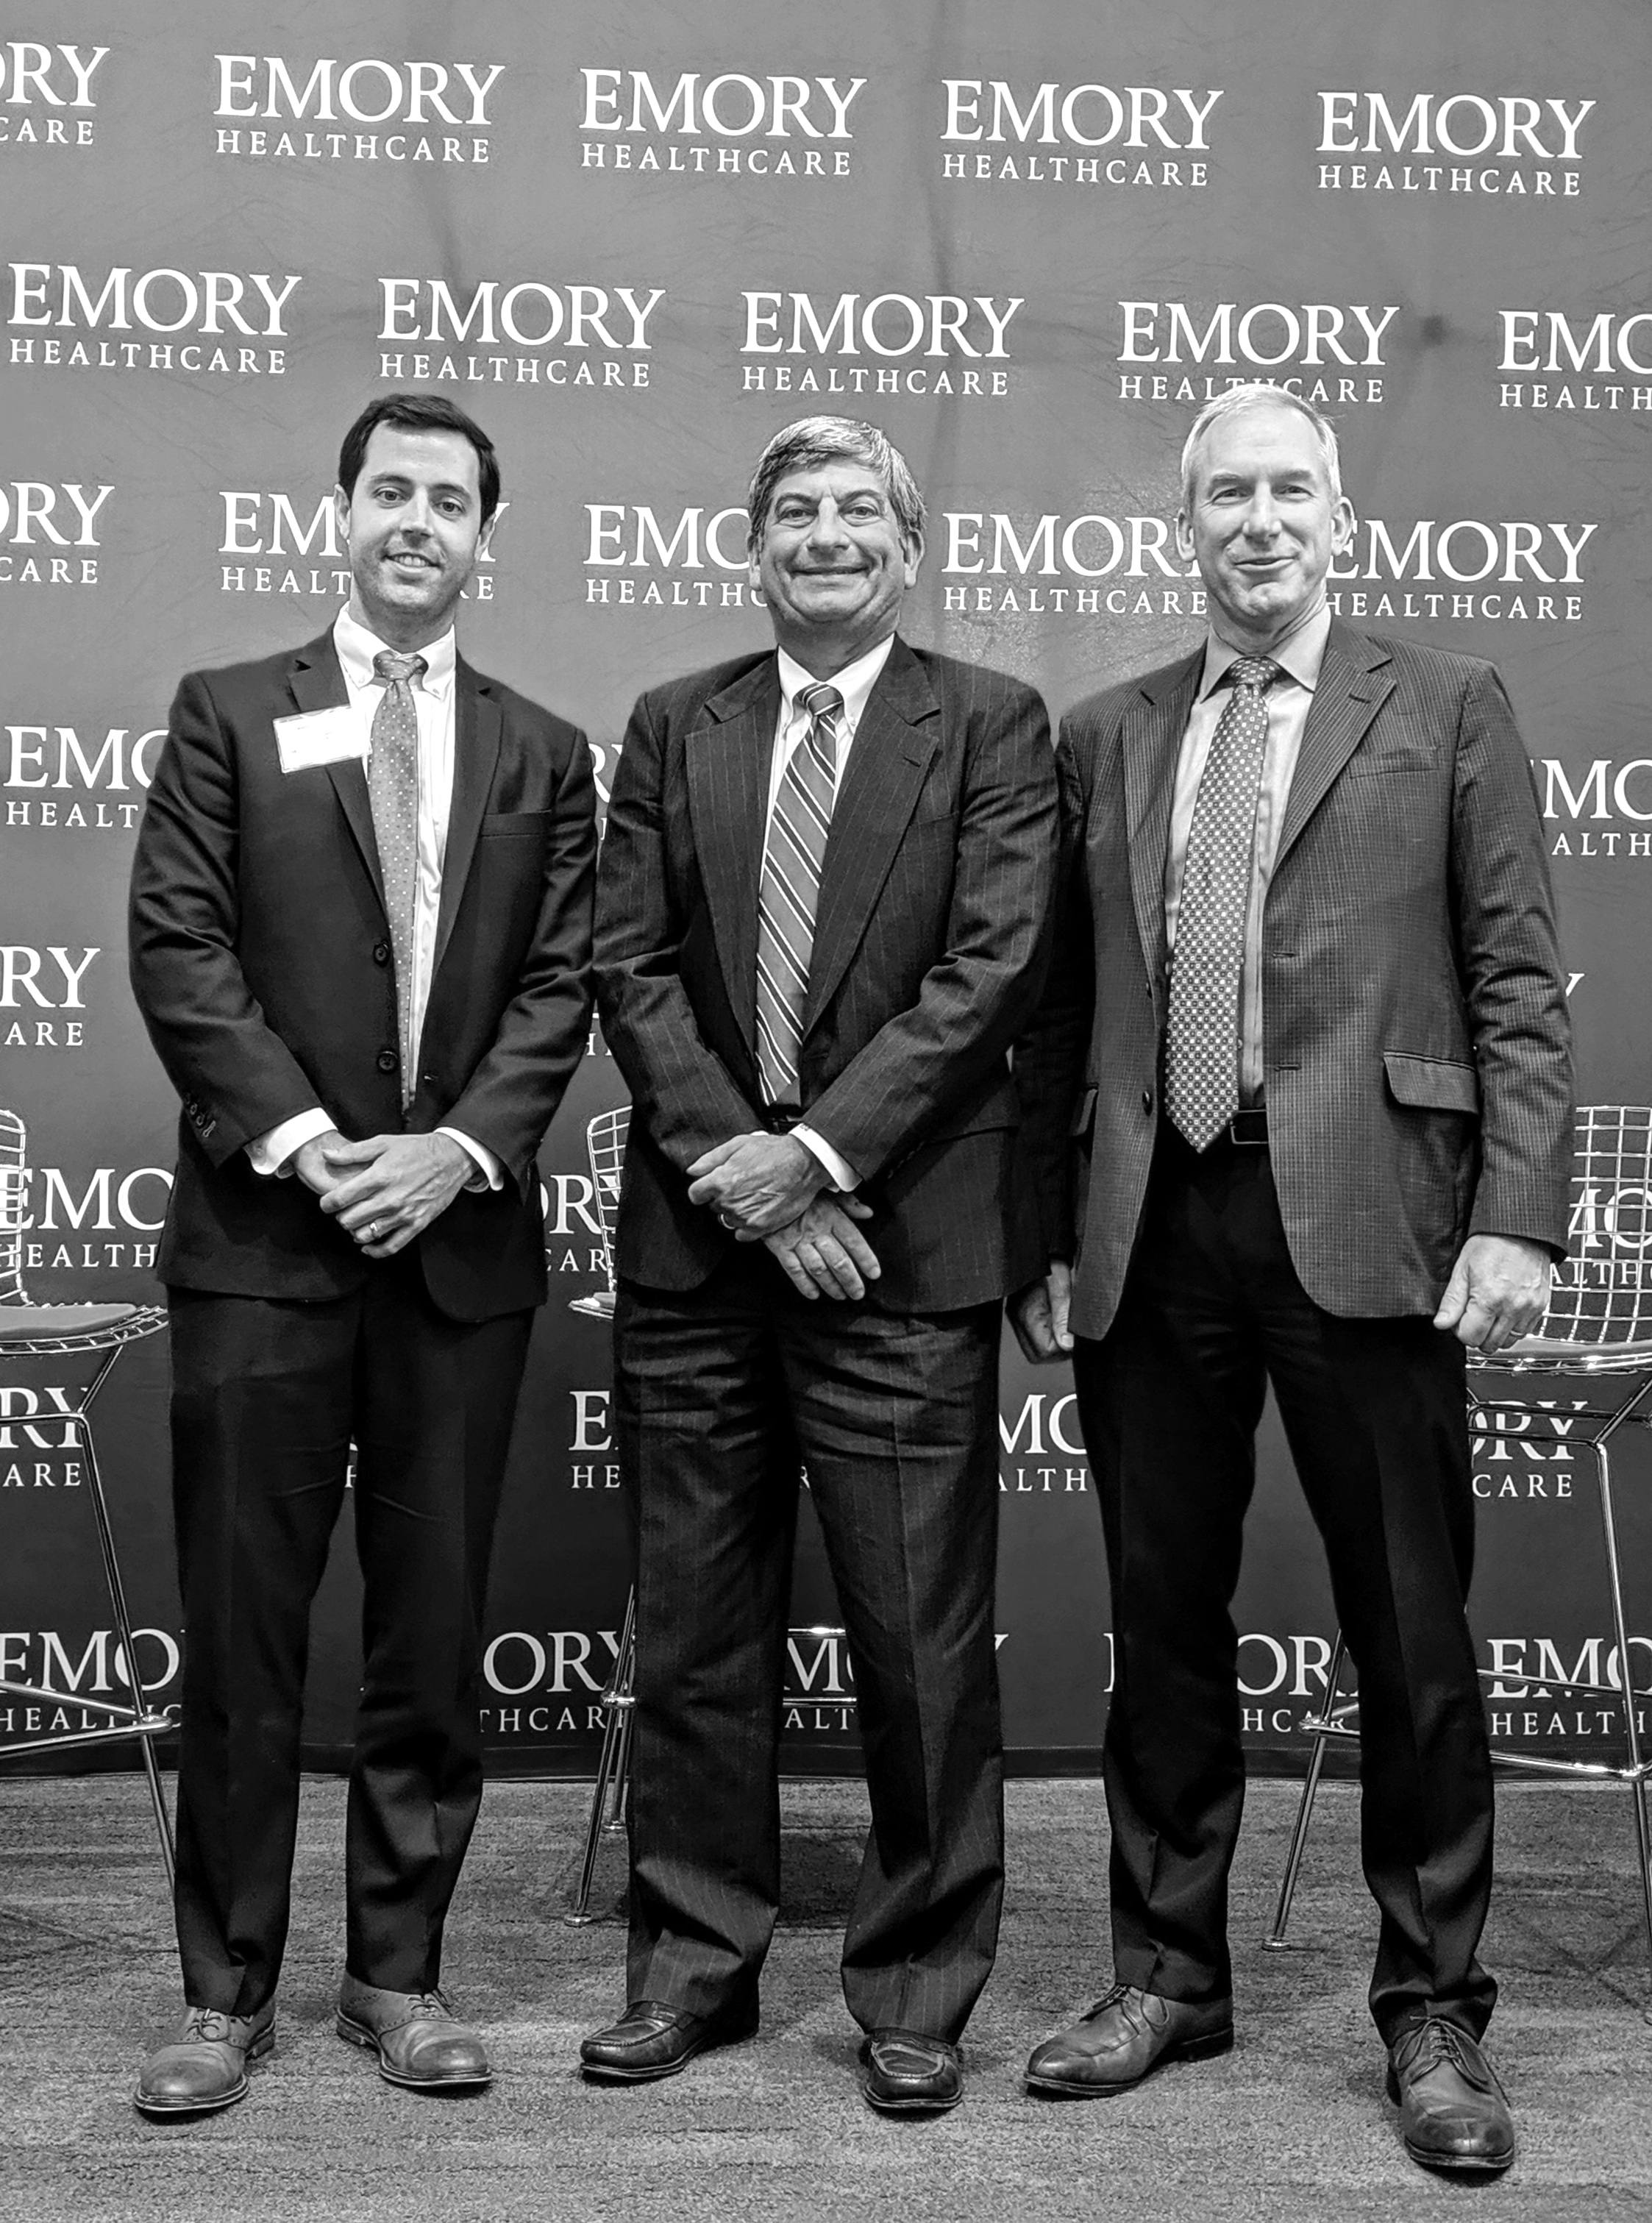 Pictured above from left to right: James Lewis, Co-Founder and CEO of 11 TEN Innovation Partners; Scott D. Boden, M.D., Vice President of Business Innovation, Emory Healthcare; David Widmann, President and CEO, Konica Minolta Healthcare Americas.